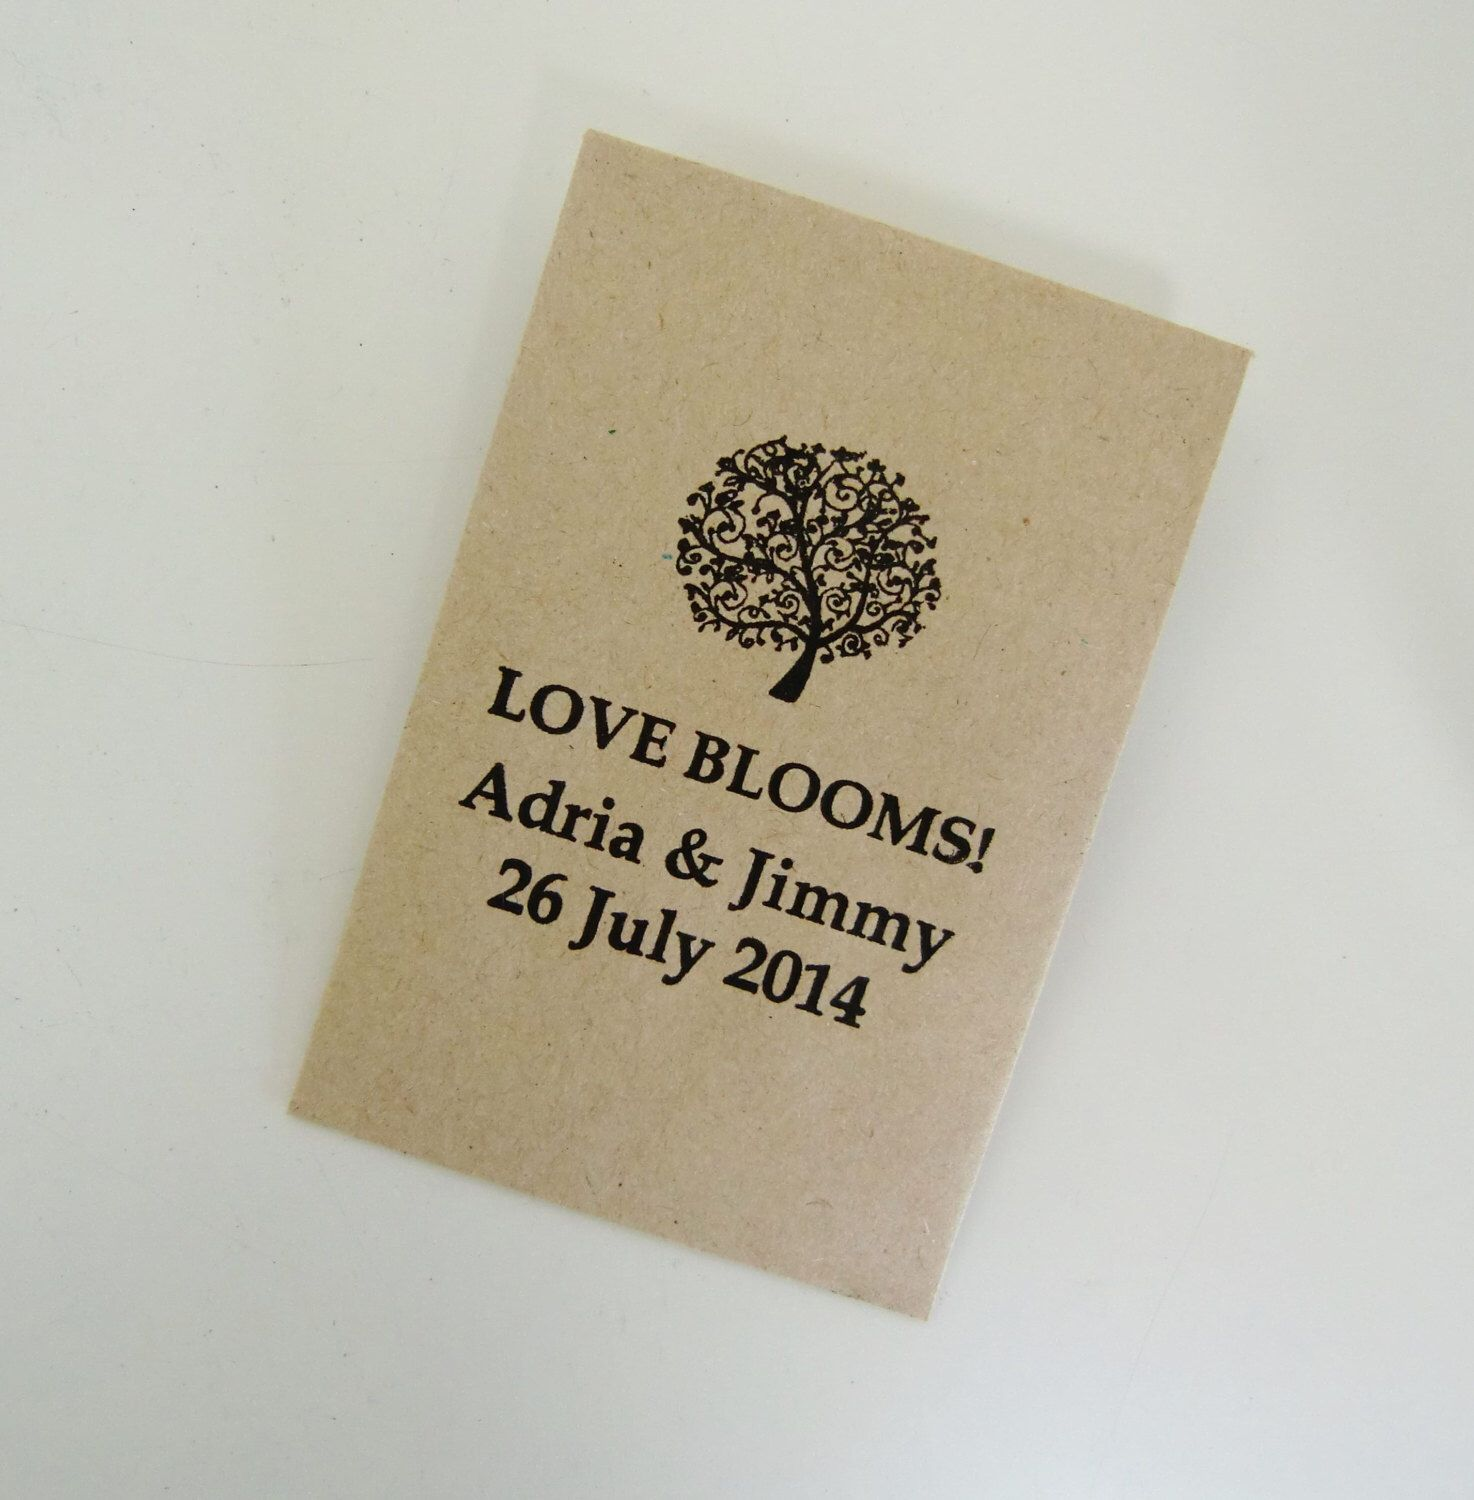 LOVE BLOOMS Rustic Seed Packets Weddin Favors Personalized Packet Wedding Reception Favor Ideas Weddings